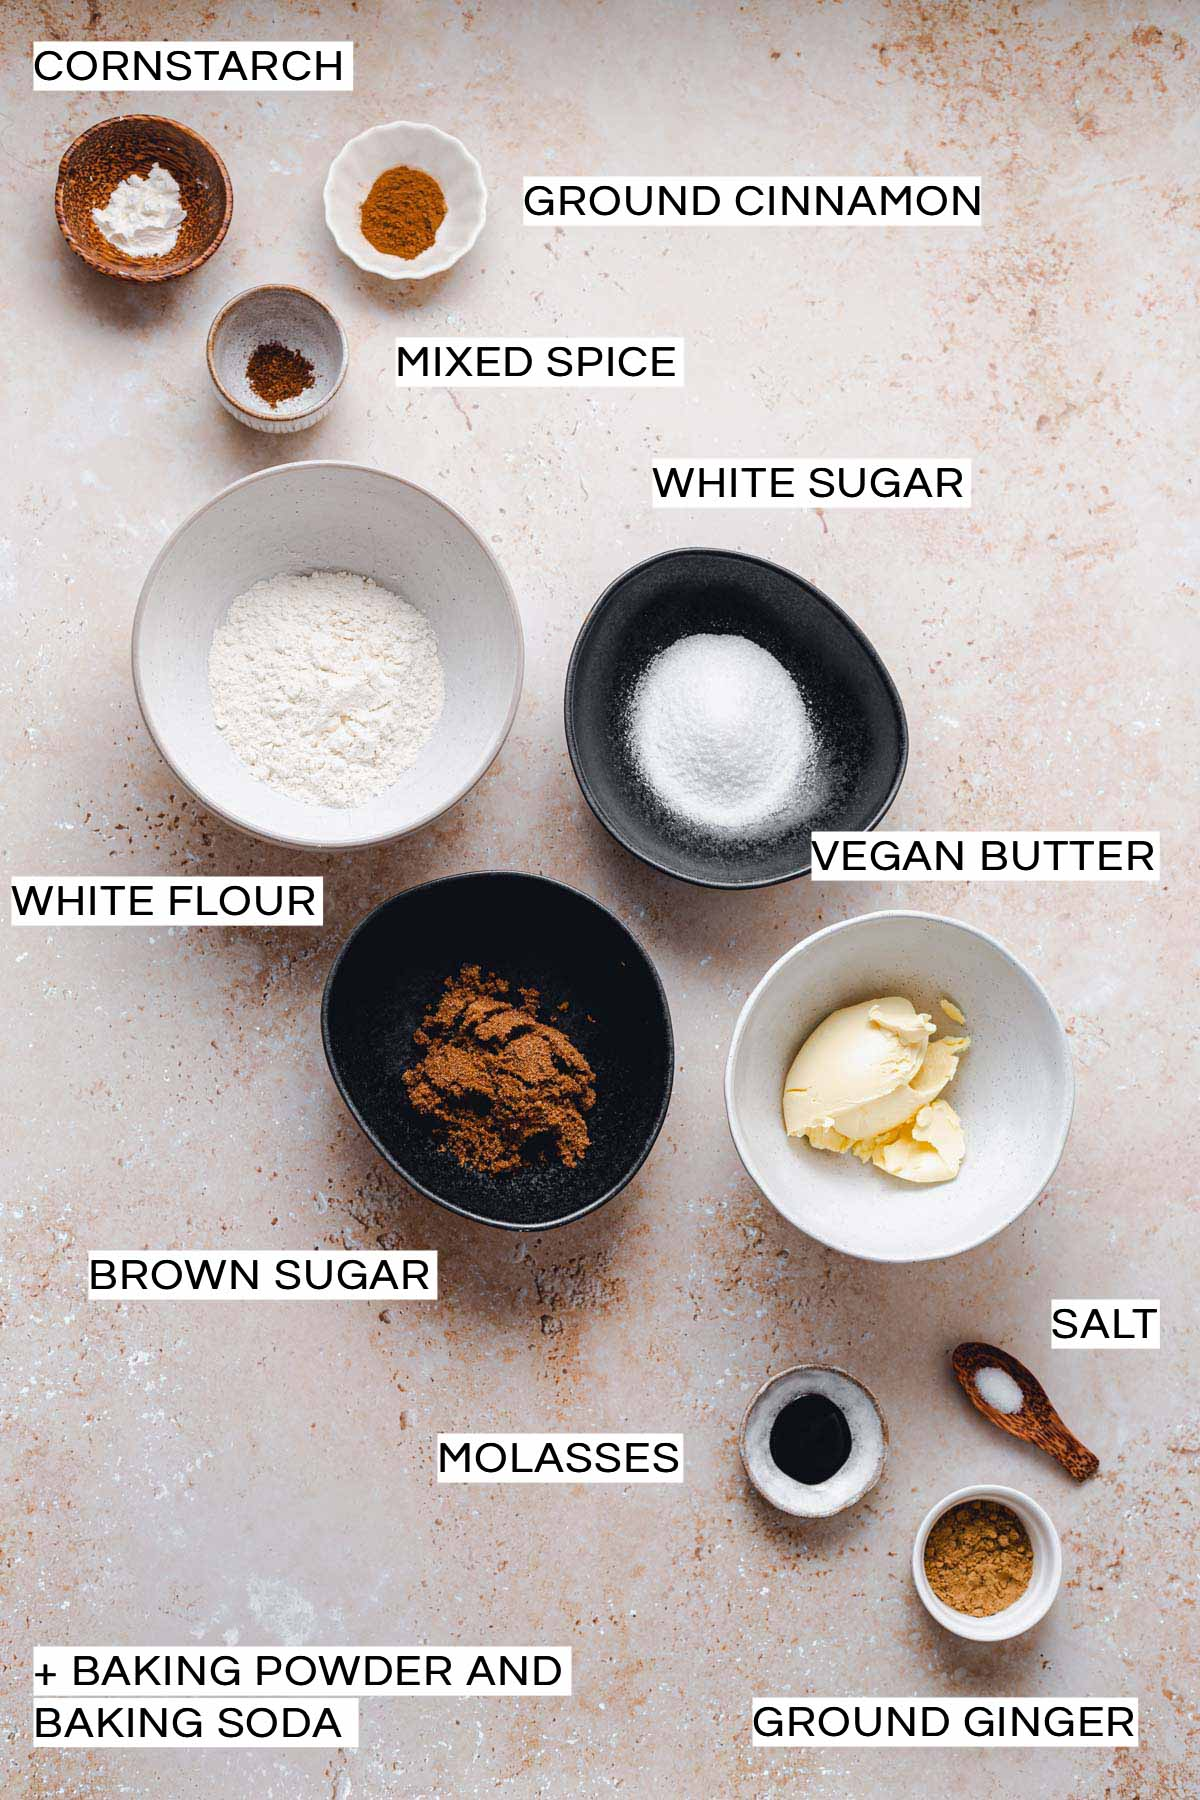 Various ingredients needed to make vegan ginger cookies placed on a flat surface.